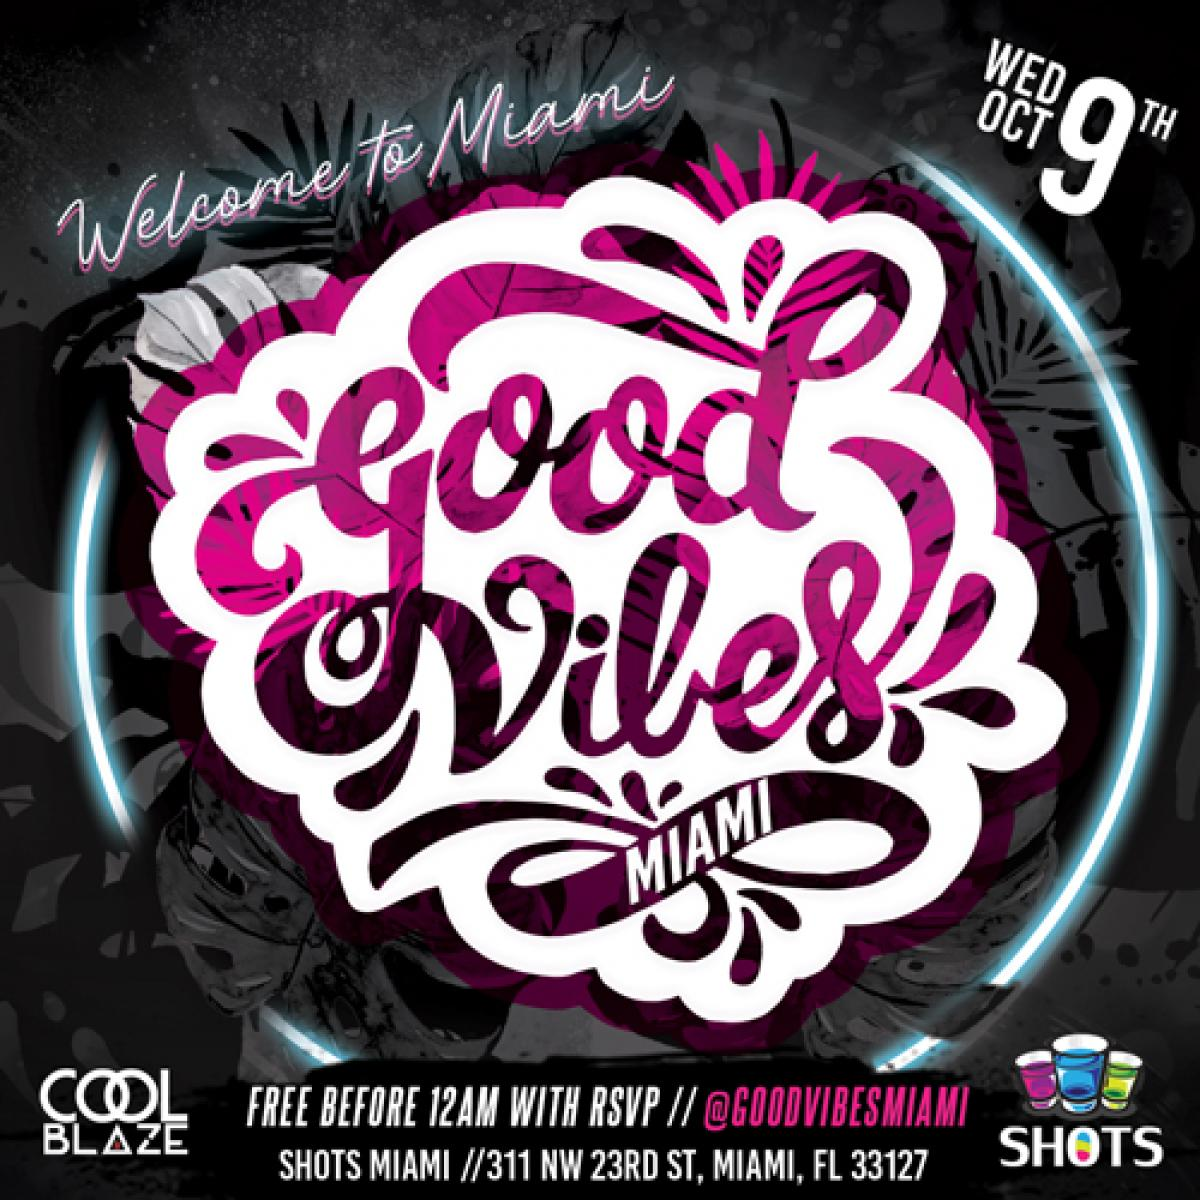 Good Vibes Only flyer or graphic.